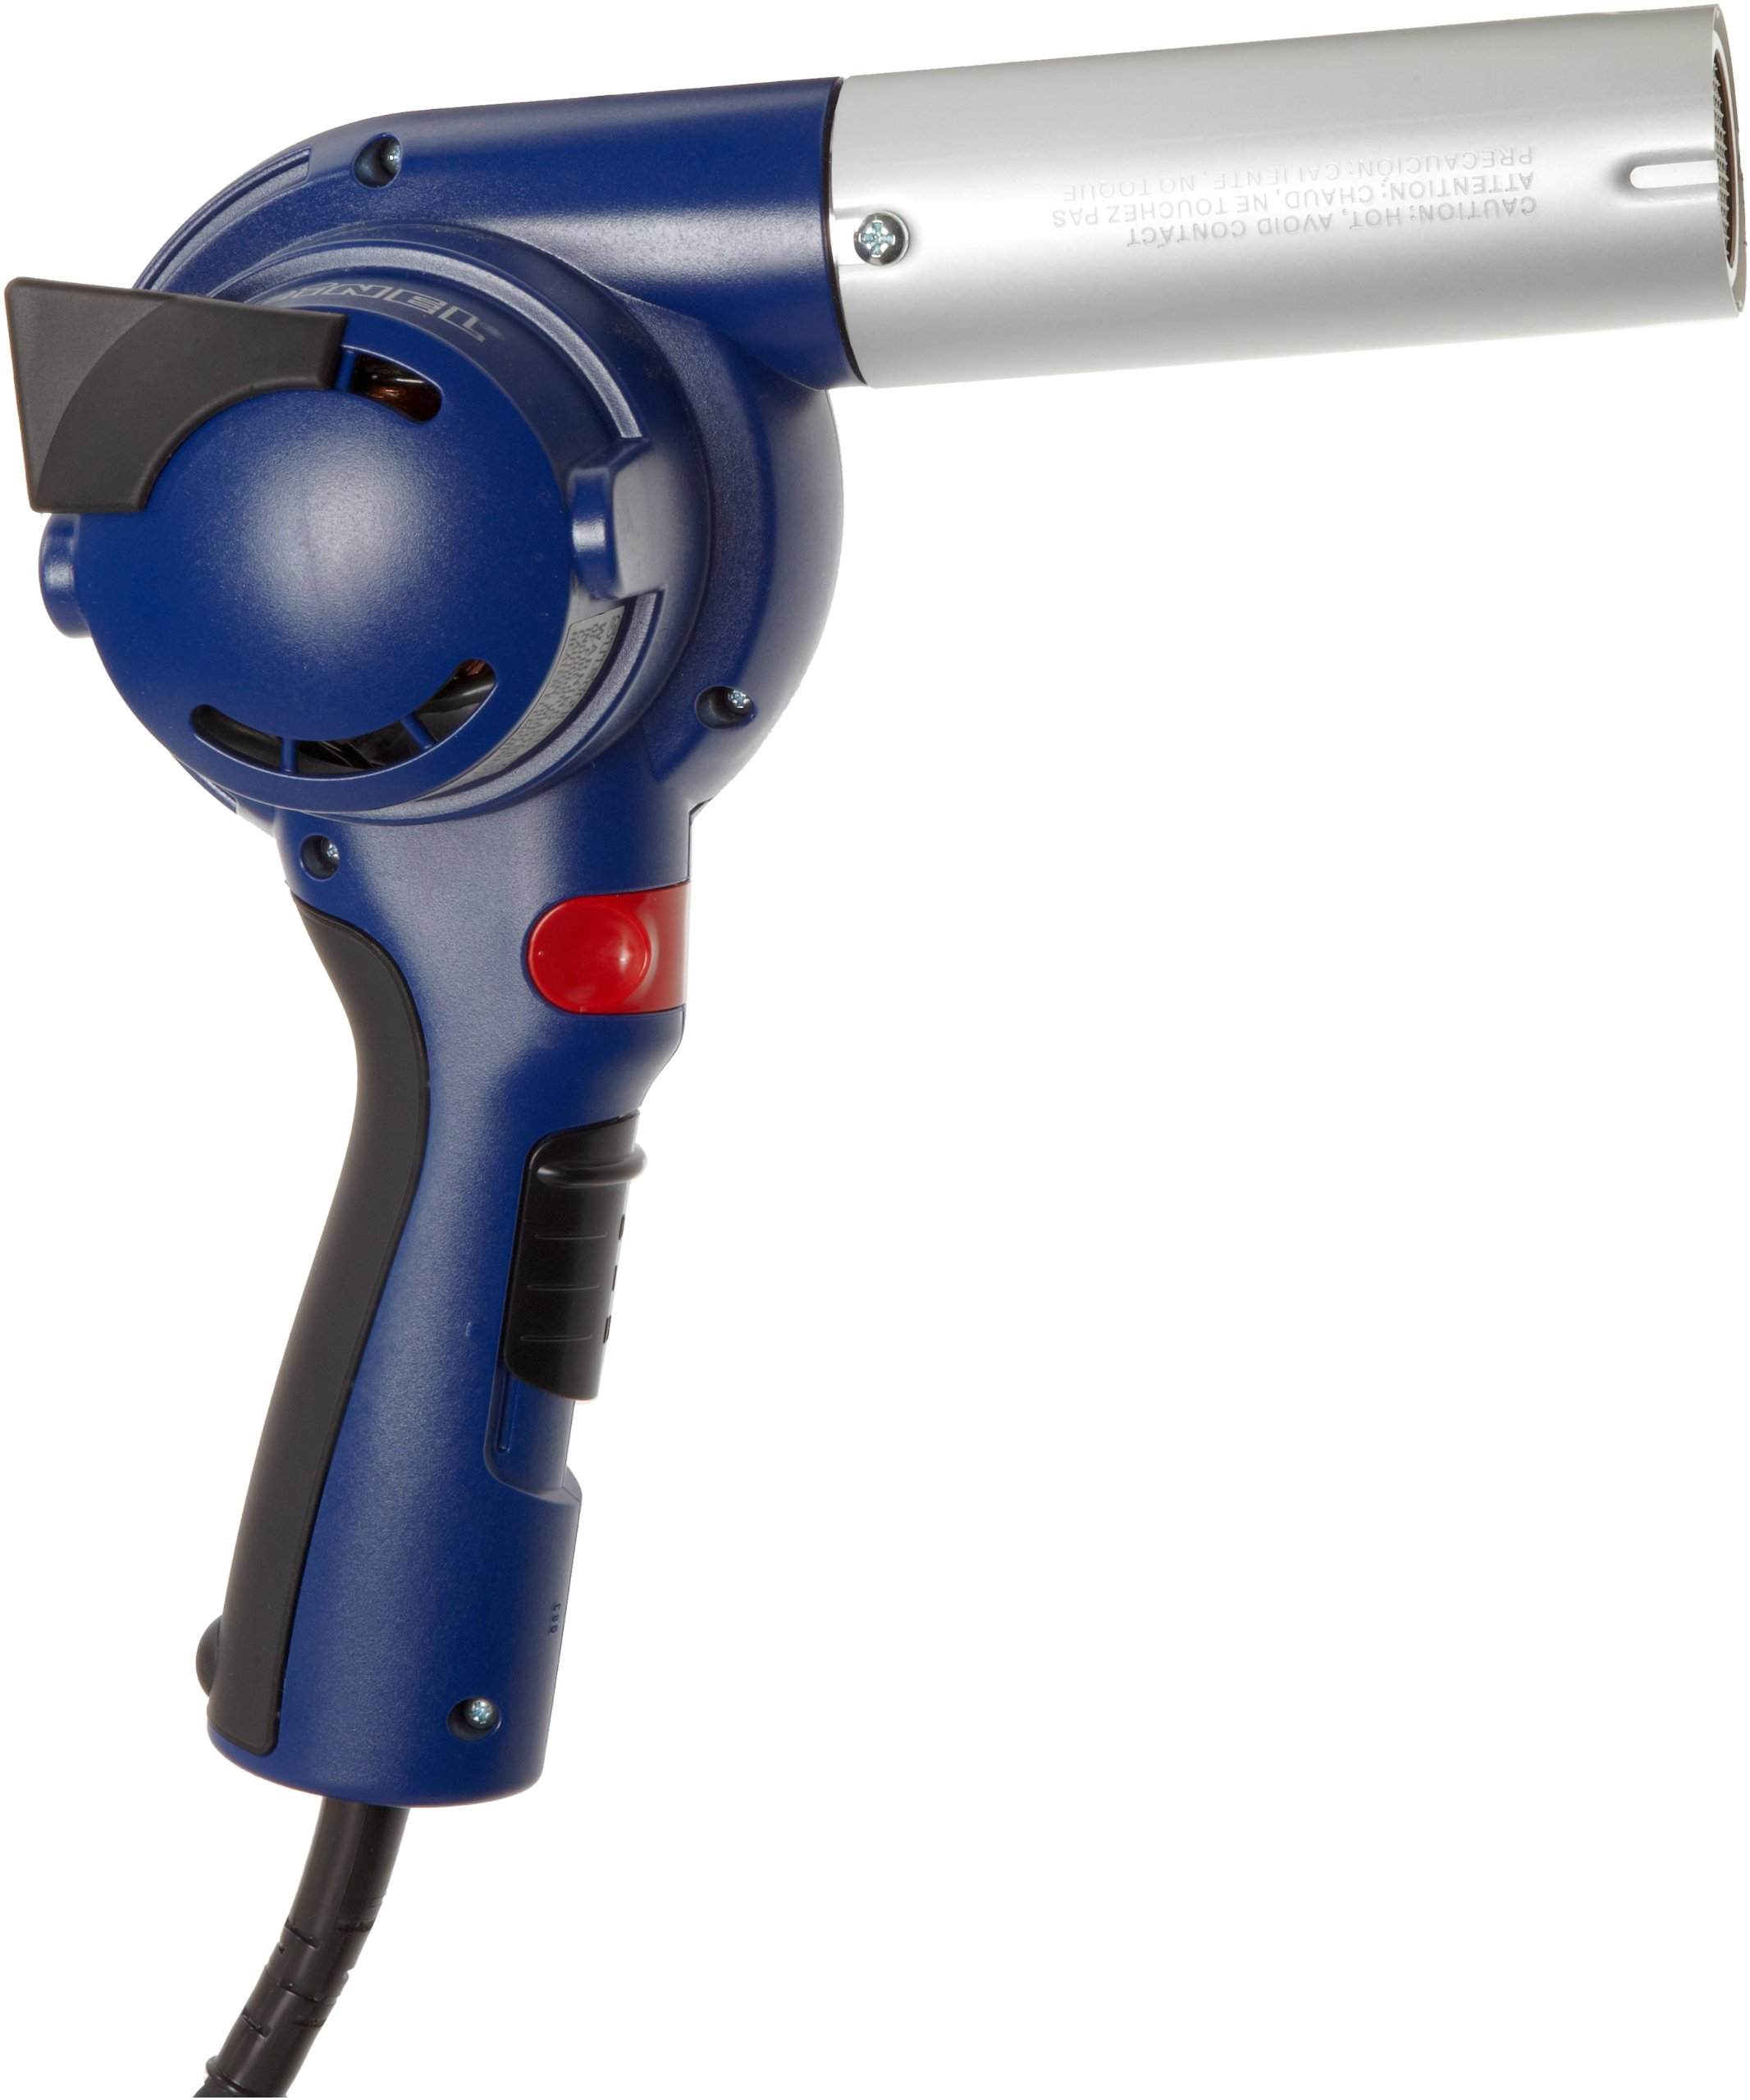 Steinel HB 1750 - Powerful turbine blower with air delivery rate up to 23 cfm, All Color coded keys for the right temperature every time, Maintenance free factory sealed motor, Lightweight, Heat Gun with well balanced design Soft Grip Handle and convenient slide switch , Power Tool includes a Plug-In heating element, 34750